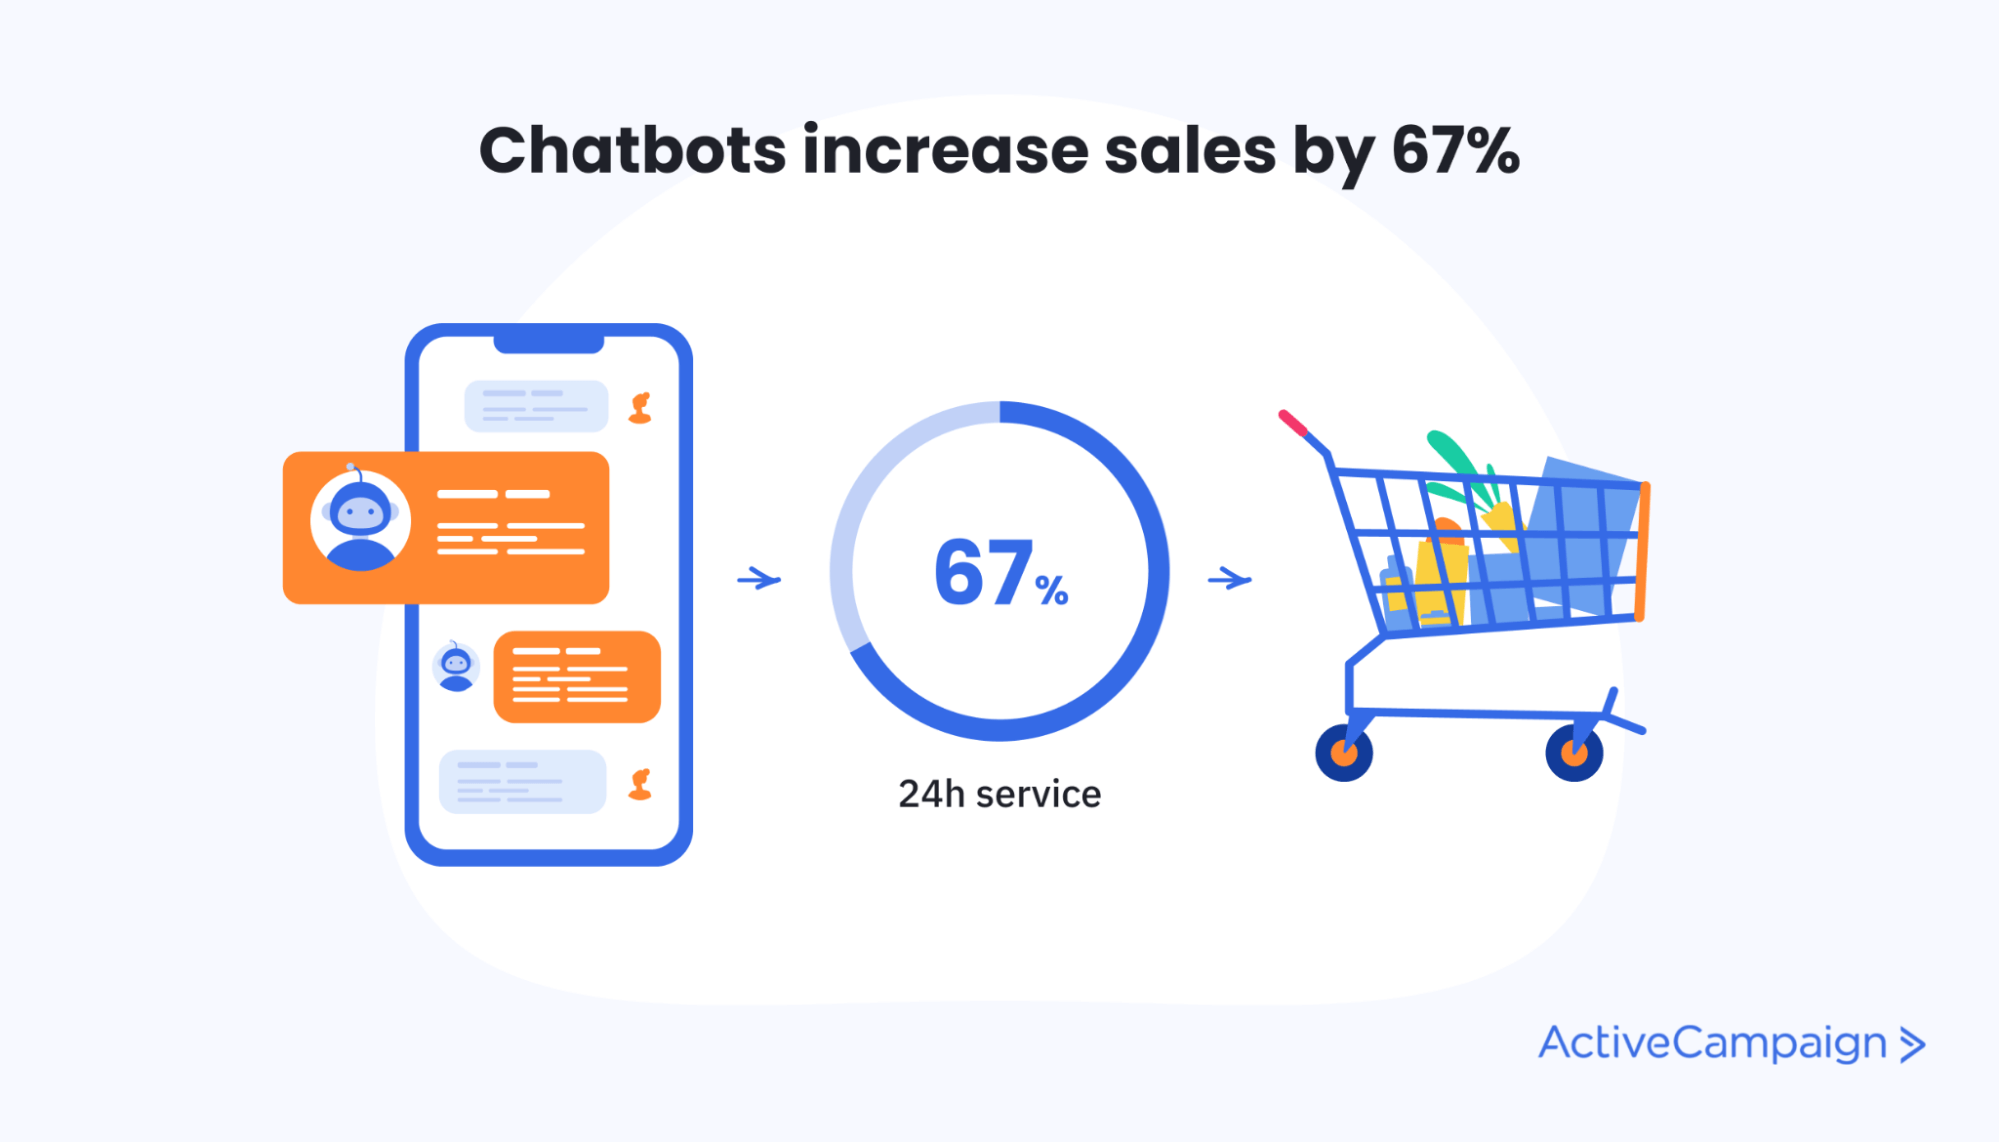 Chatbots increase sales by 67%